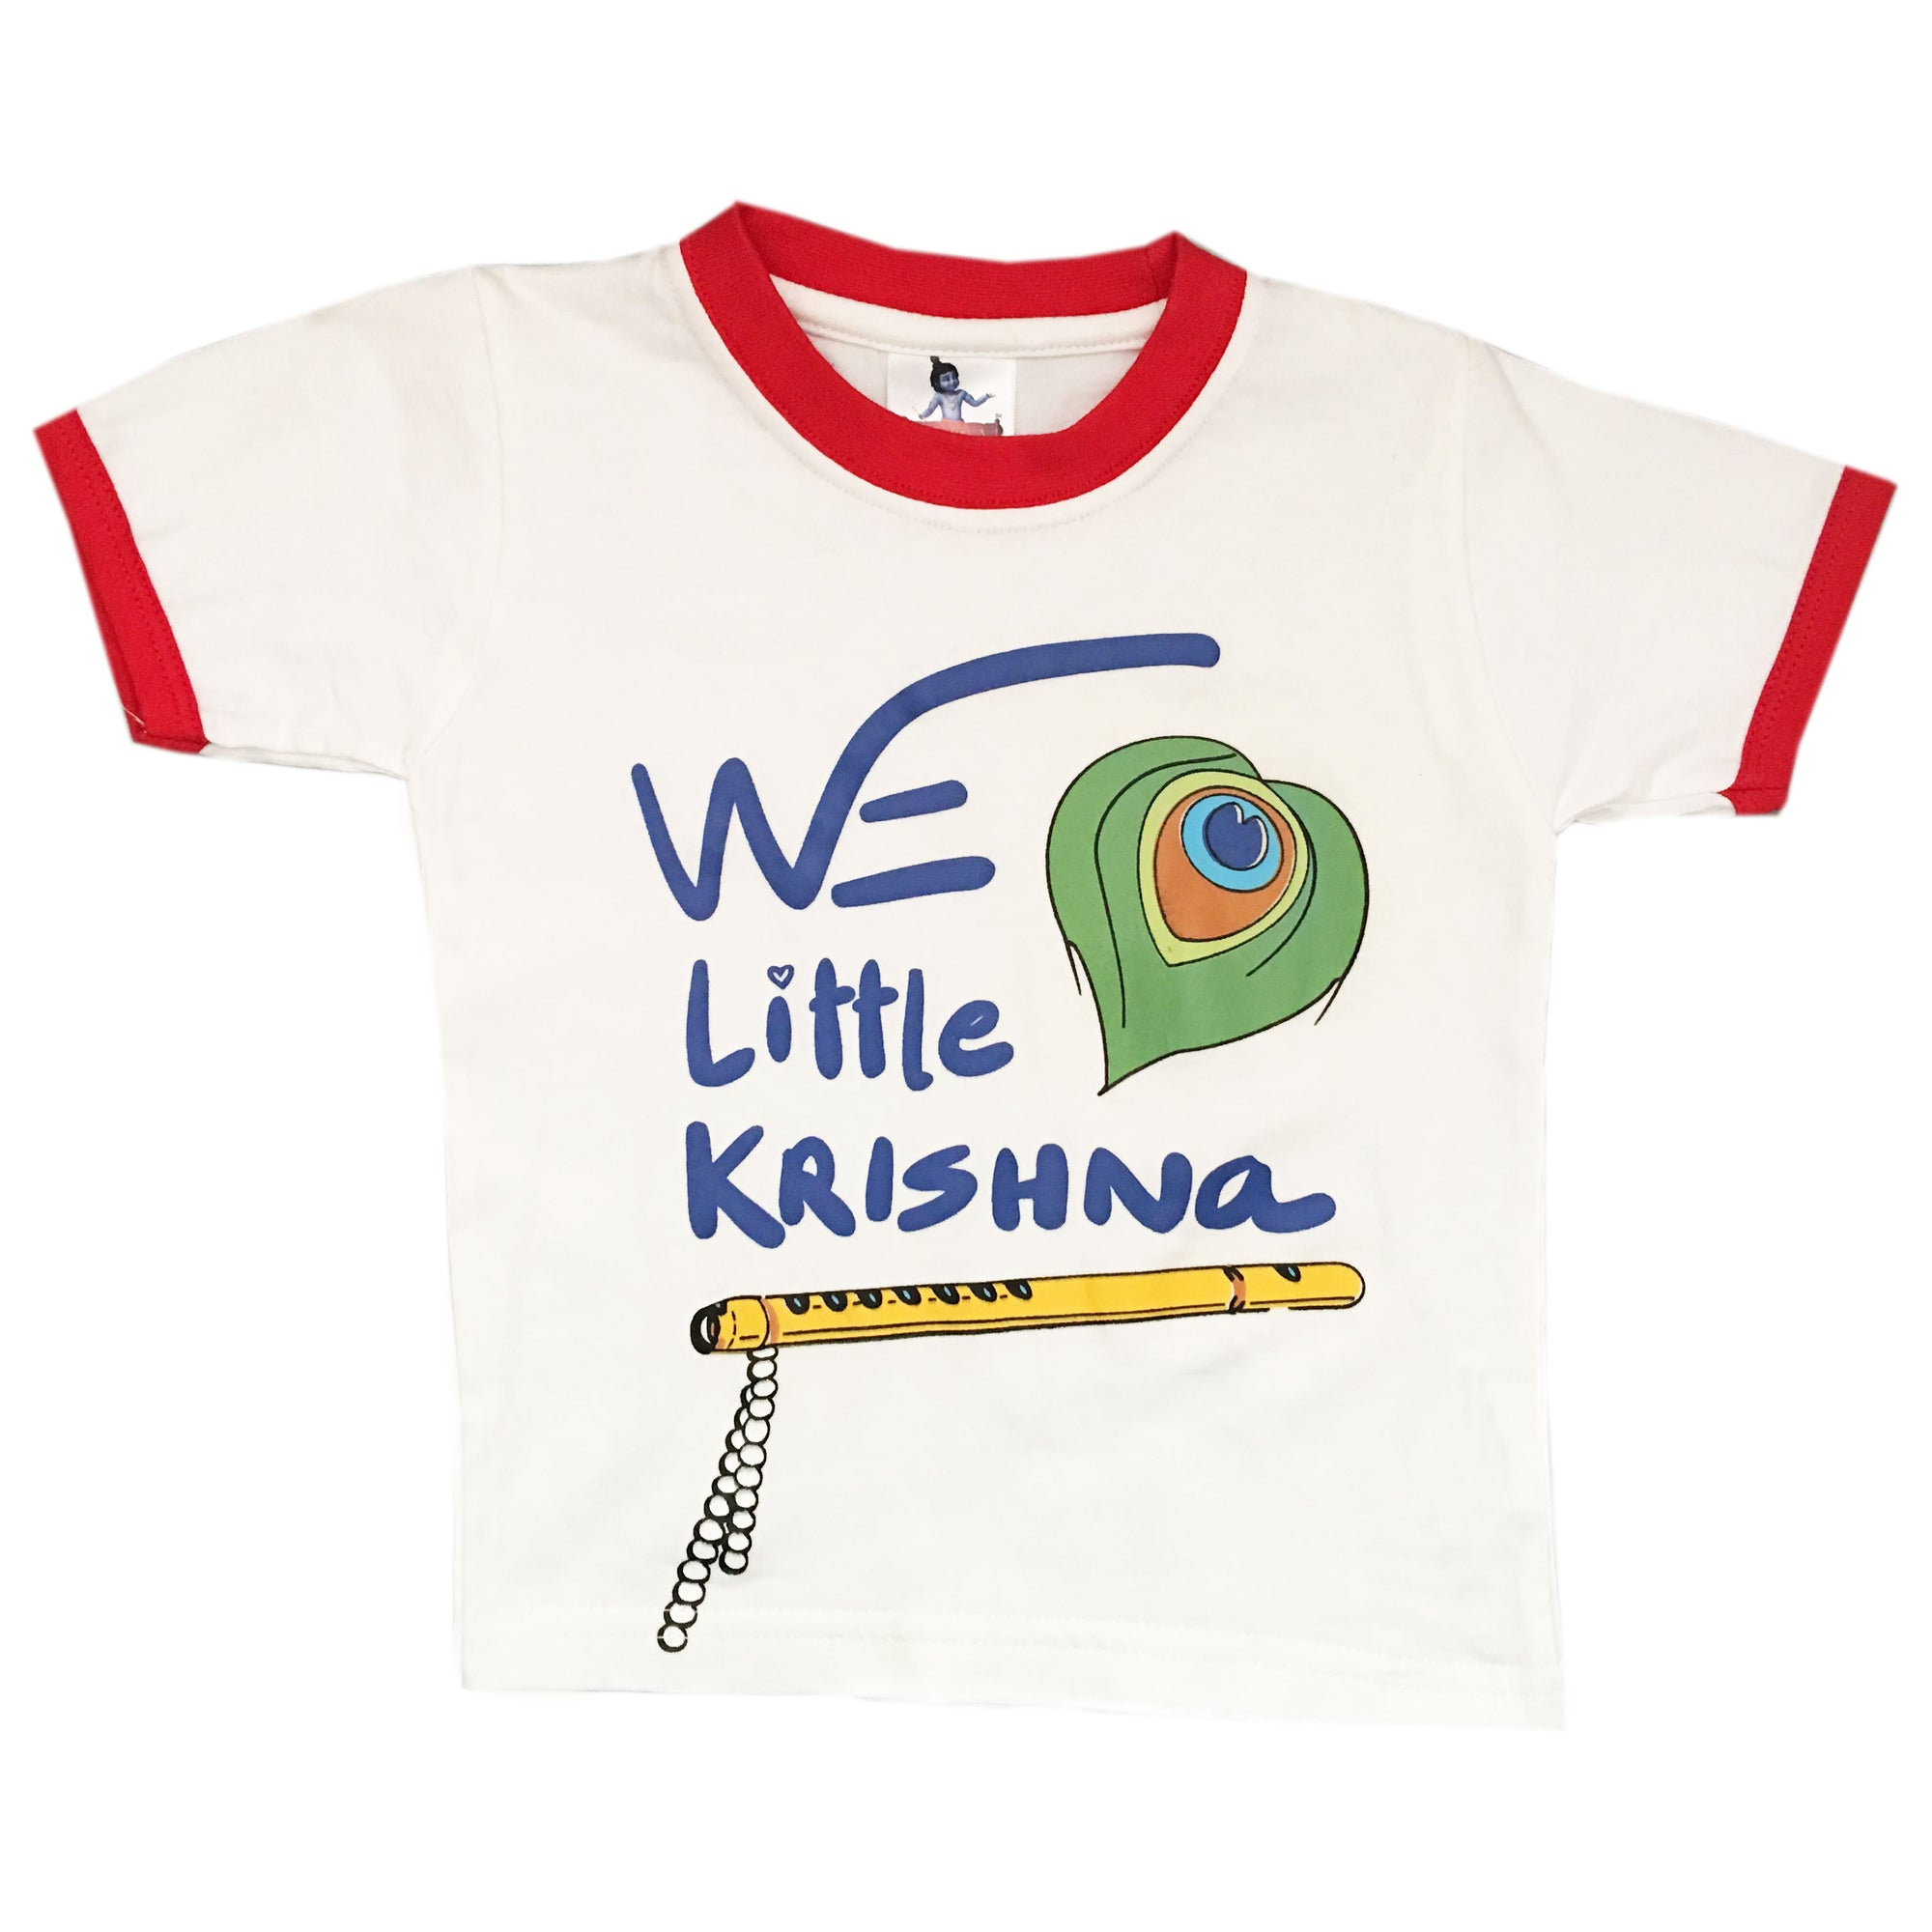 We Little Krishna Flute - T-shirt- Red- Size 06 to 24 Months